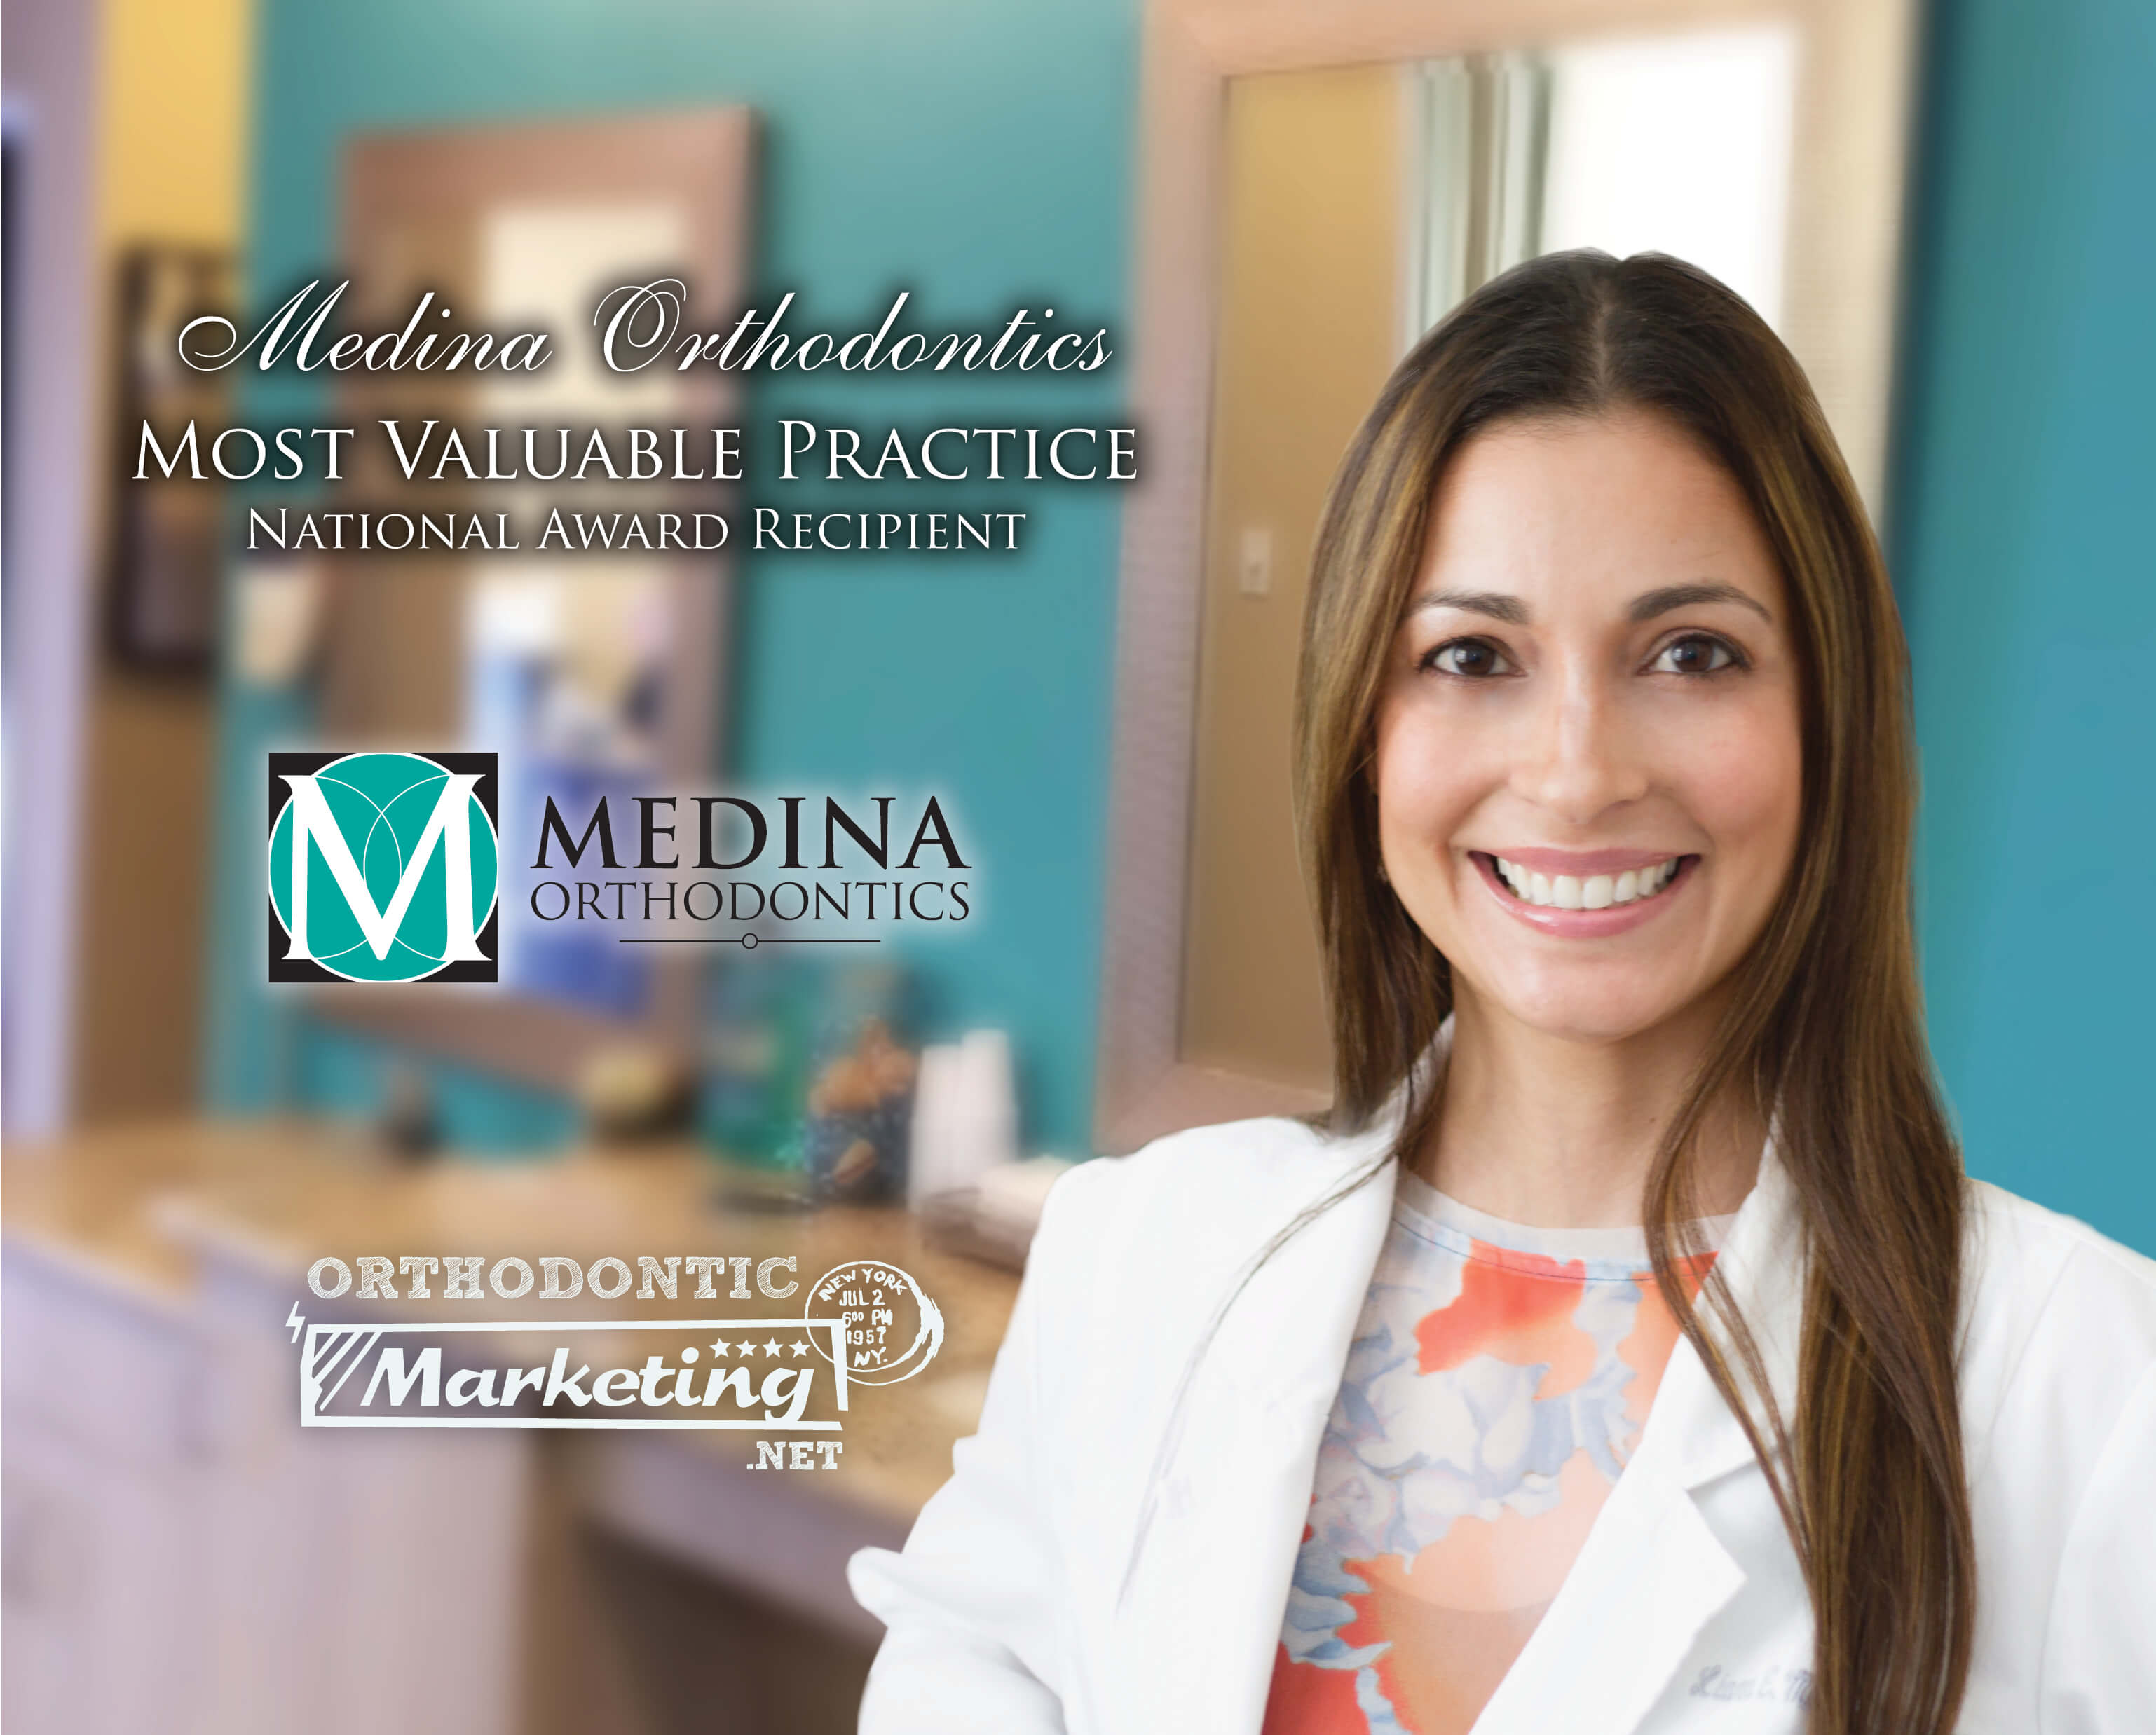 Medina Orthodontics - Dental Marketing Most Valuable Practice